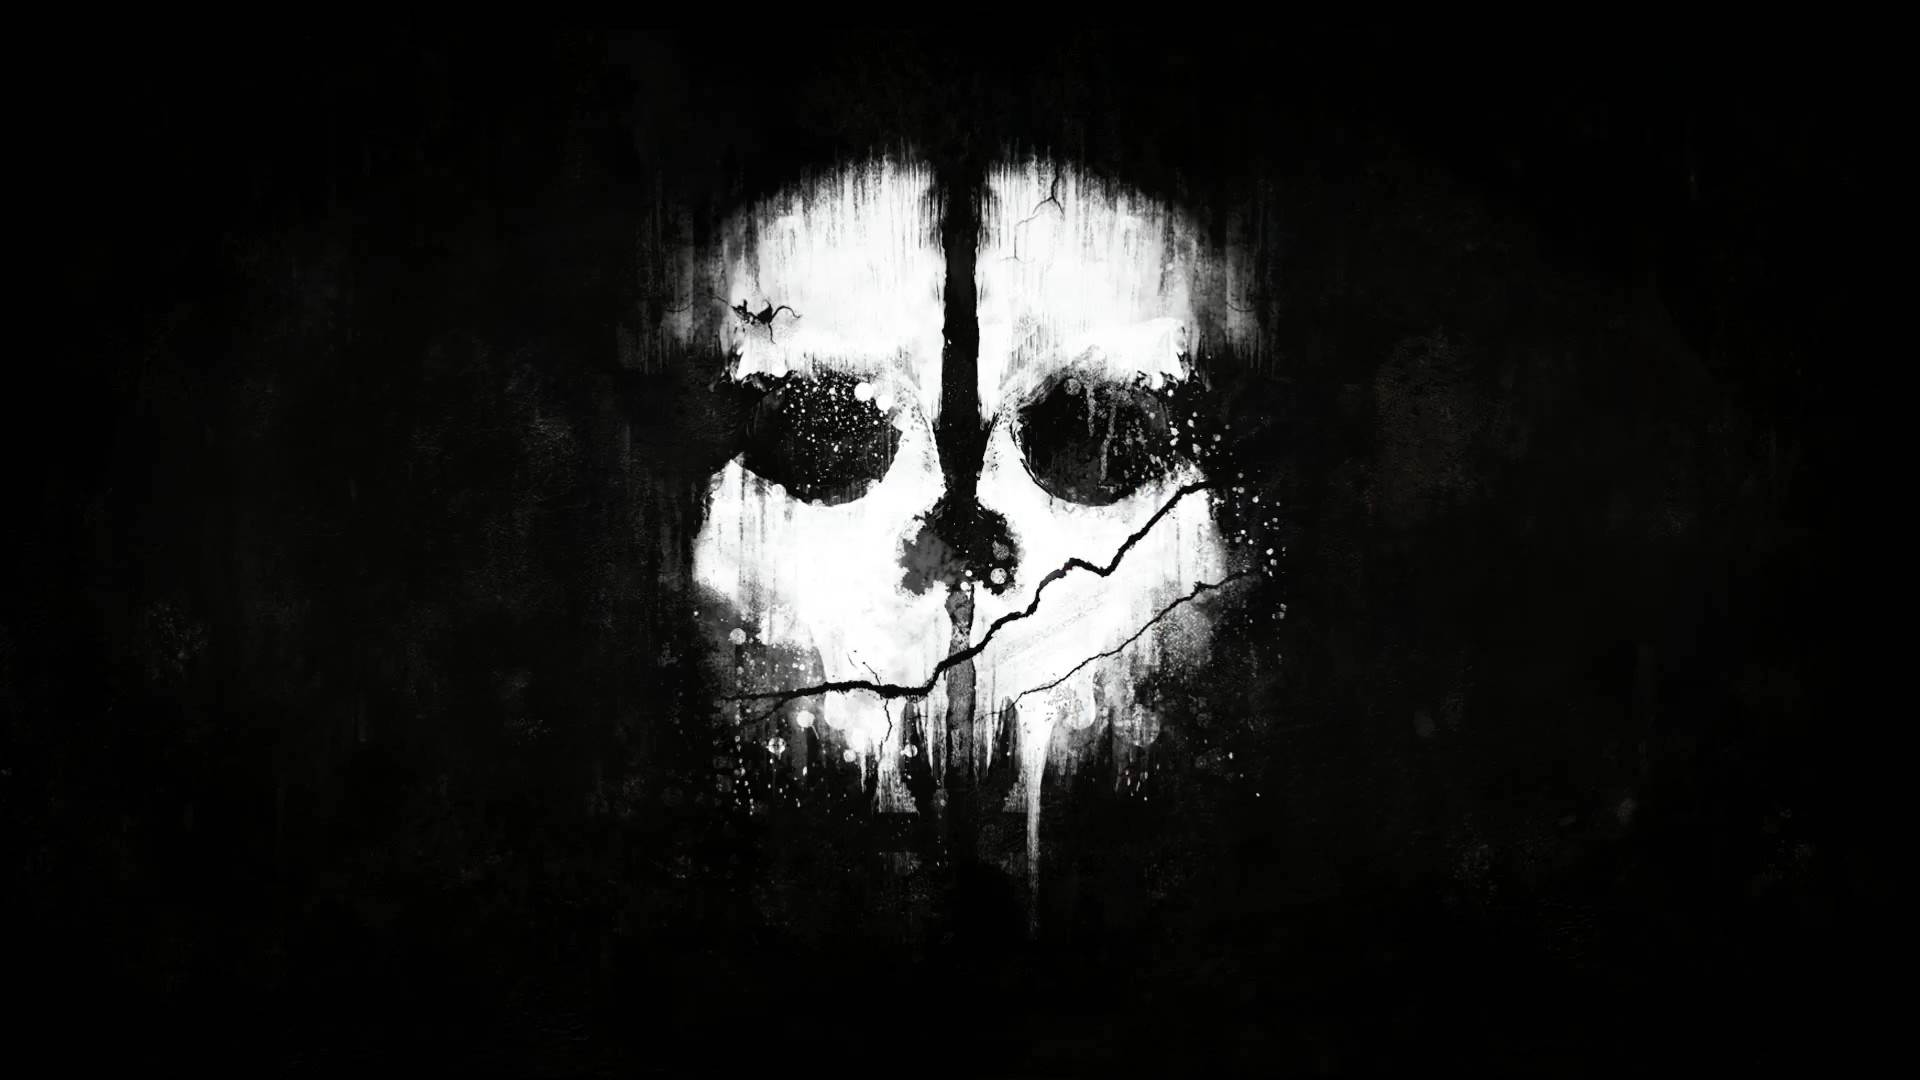 Call Of Duty Ghosts Wallpaper In Hd 171 Gamingbolt Com